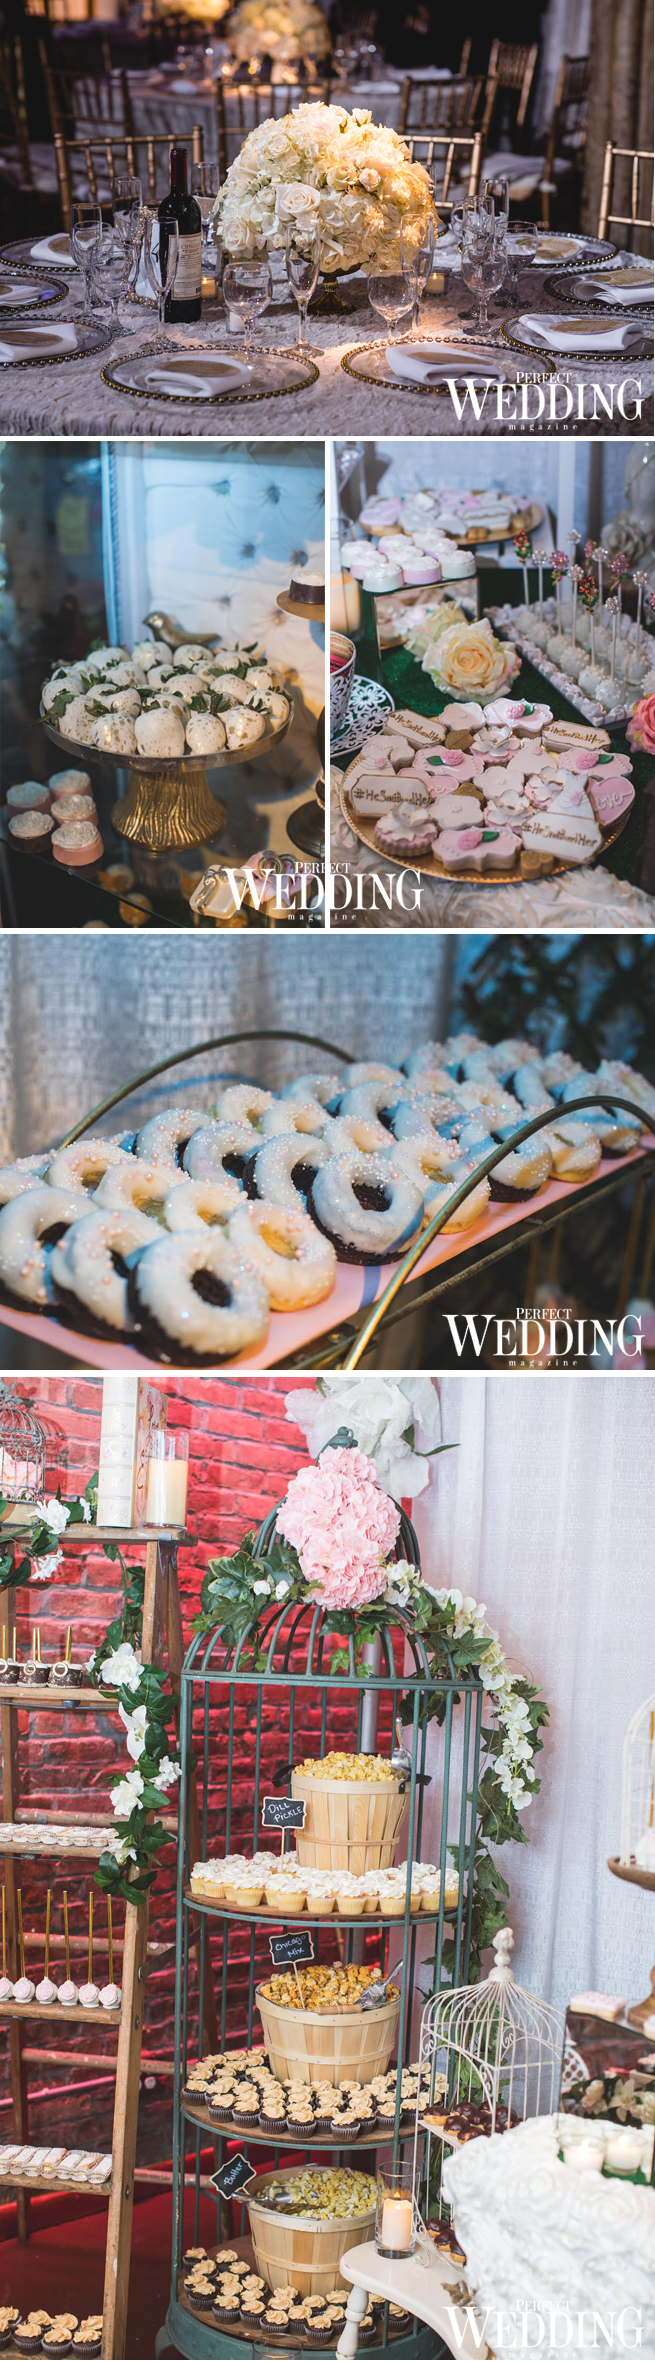 Pia Toscano, Pia Toscano Wedding, Perfect Wedding Magazine, Perfect Wedding Blog